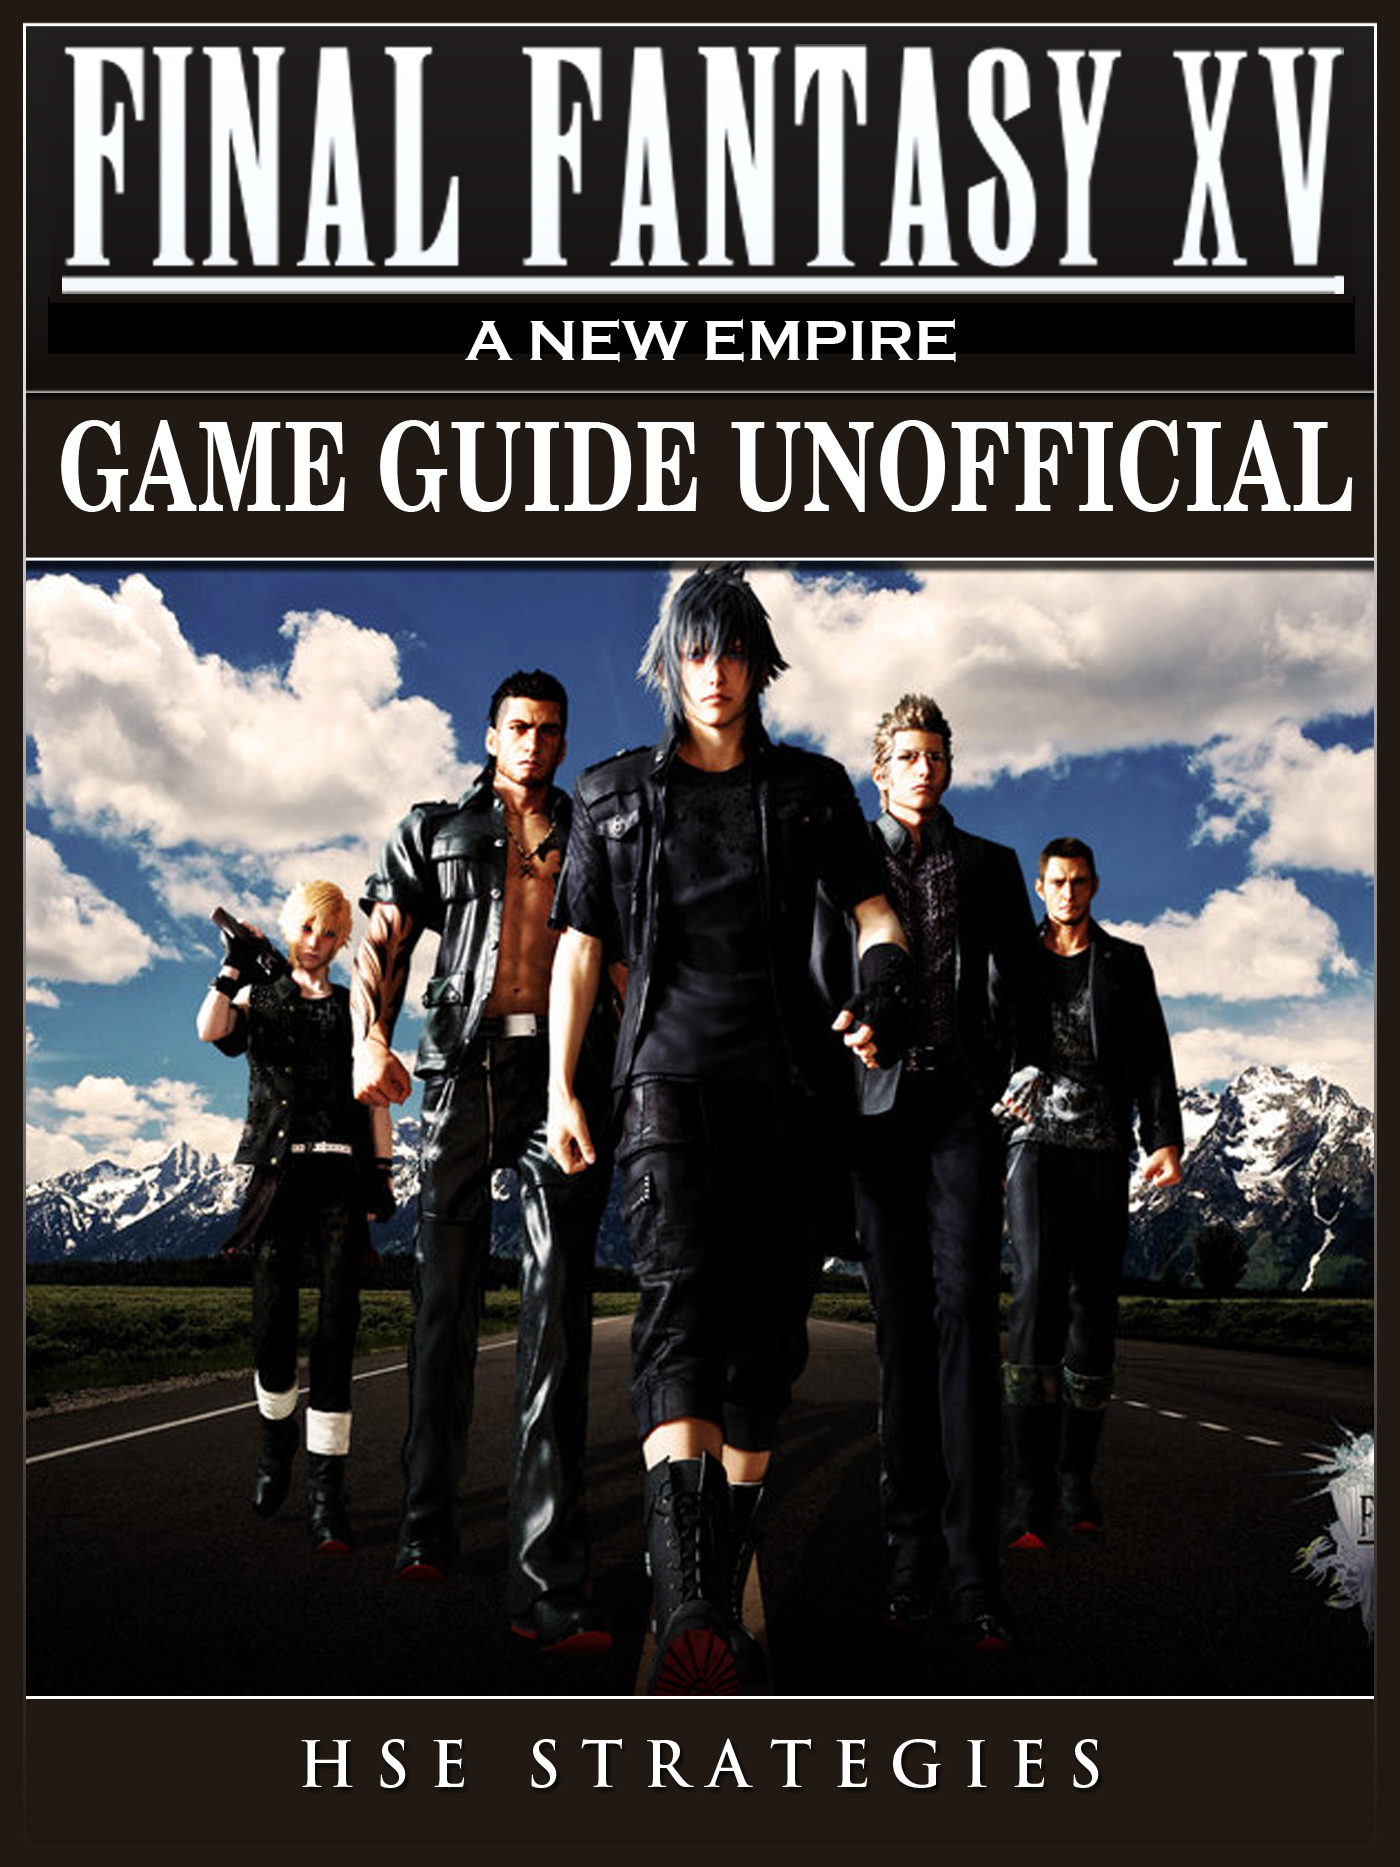 Final Fantasy XV A New Empire Game Guide Unofficial By Hse Strategies